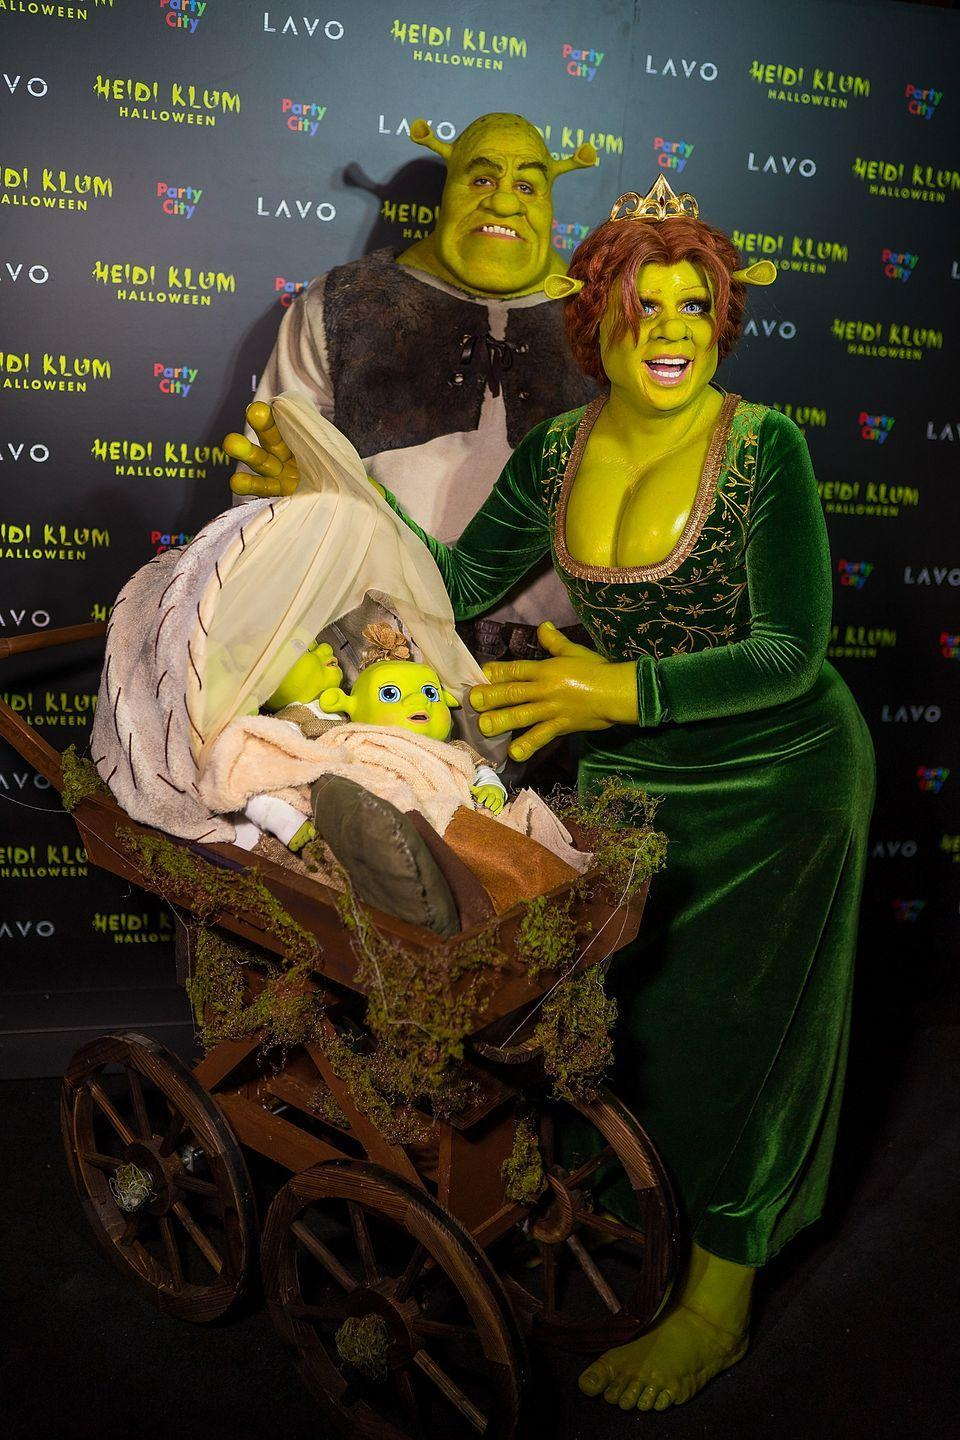 <p>Heidi Klum and Tom Kaulitz made their grand entrance at Klum's 19th Annual Halloween Party at Lavo in New York City.</p>